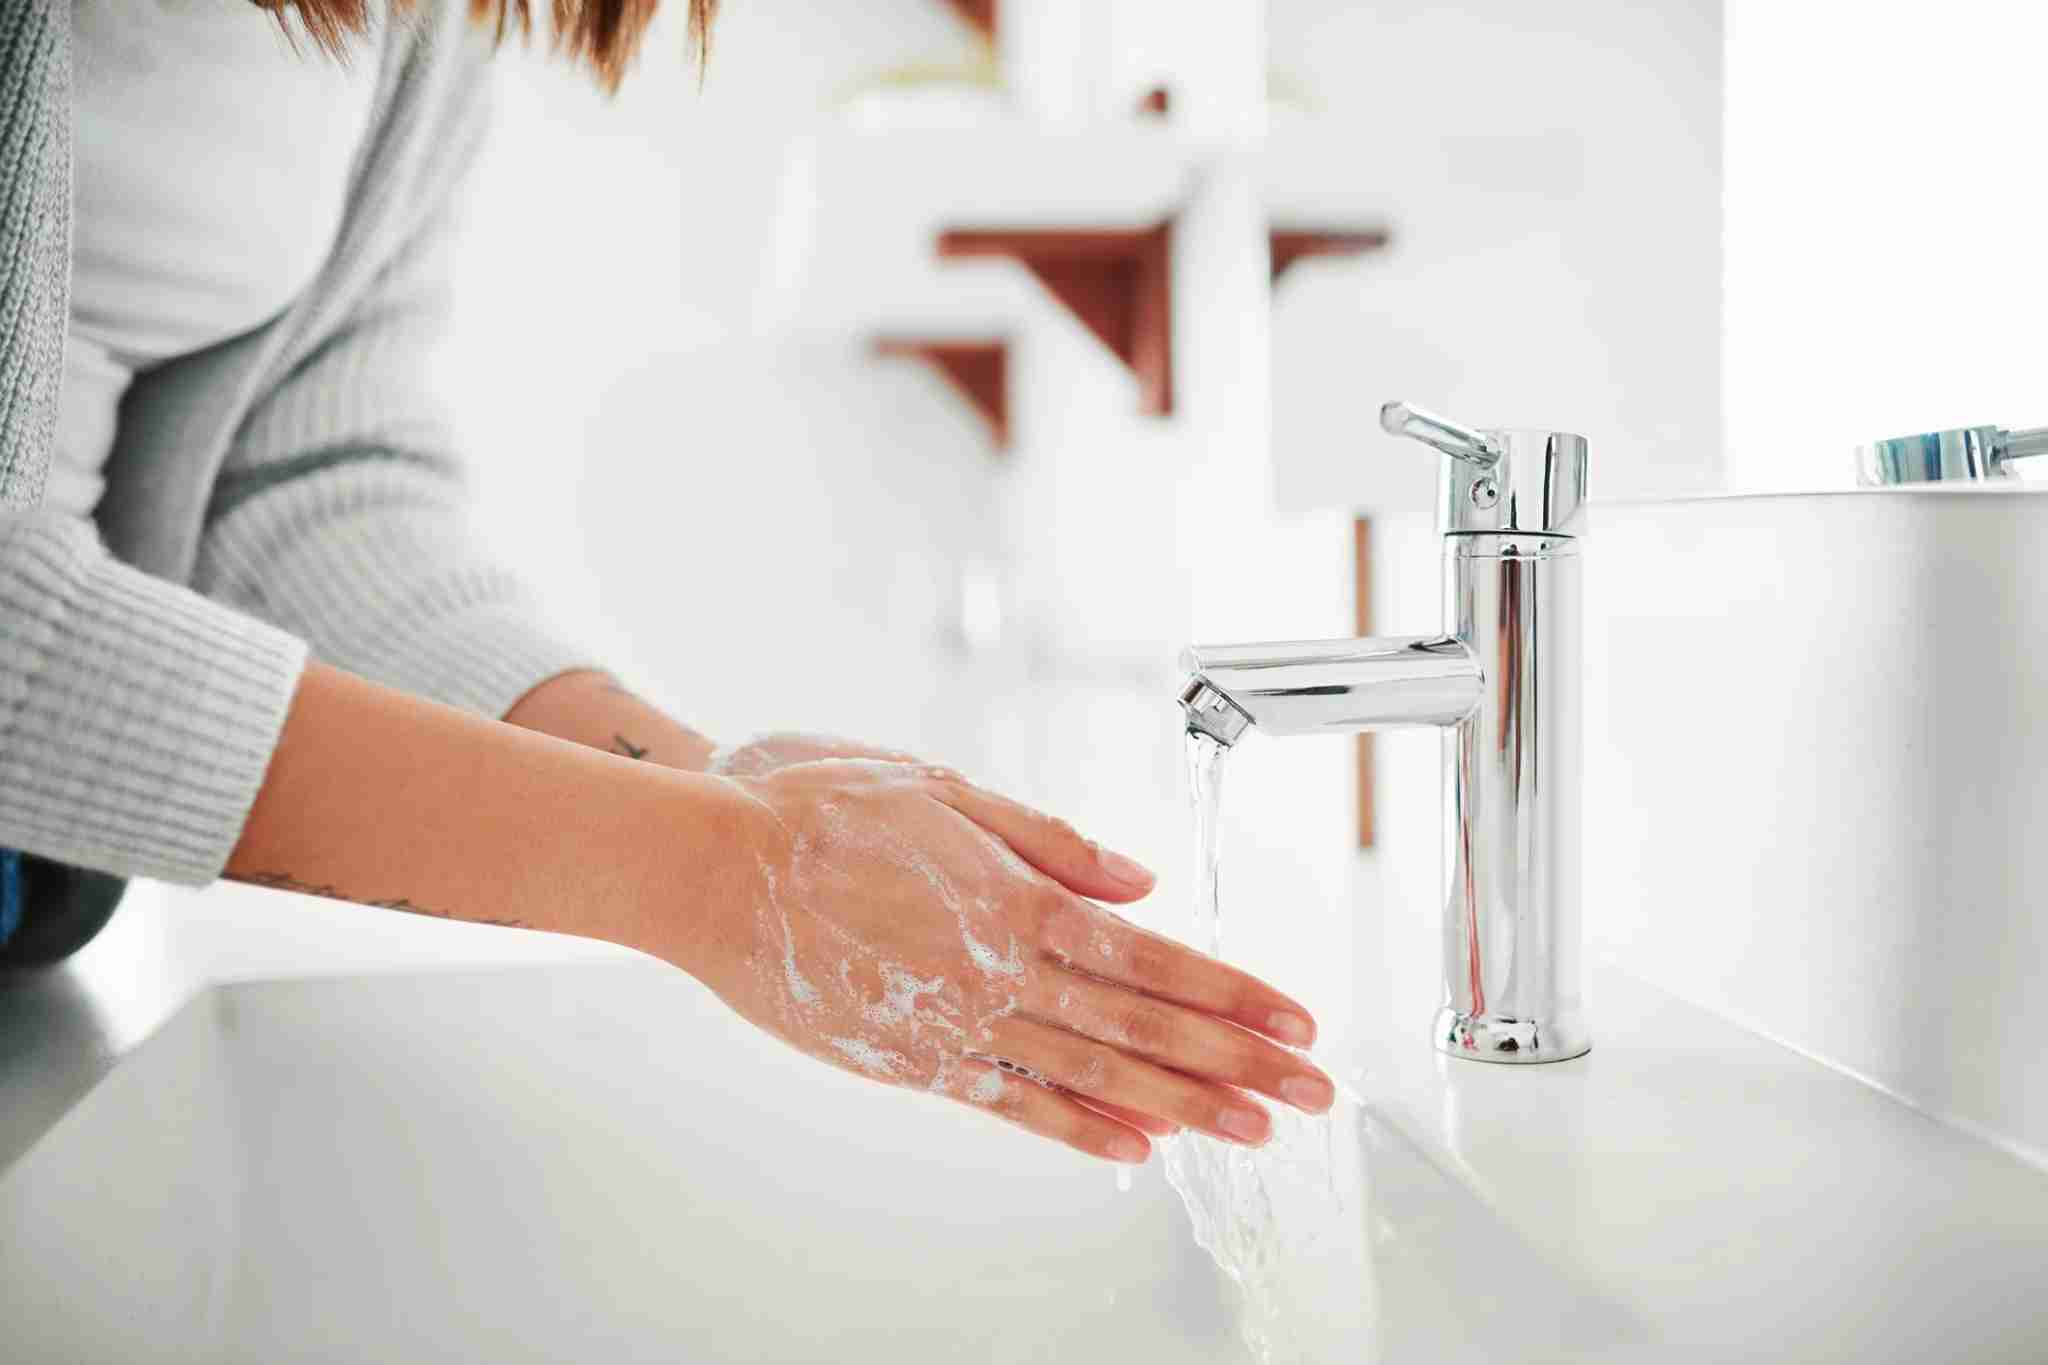 The CDC reccomends washing your hands often with soap and water for at least 20 seconds. (Photo by Jay Yuno/Getty Images)